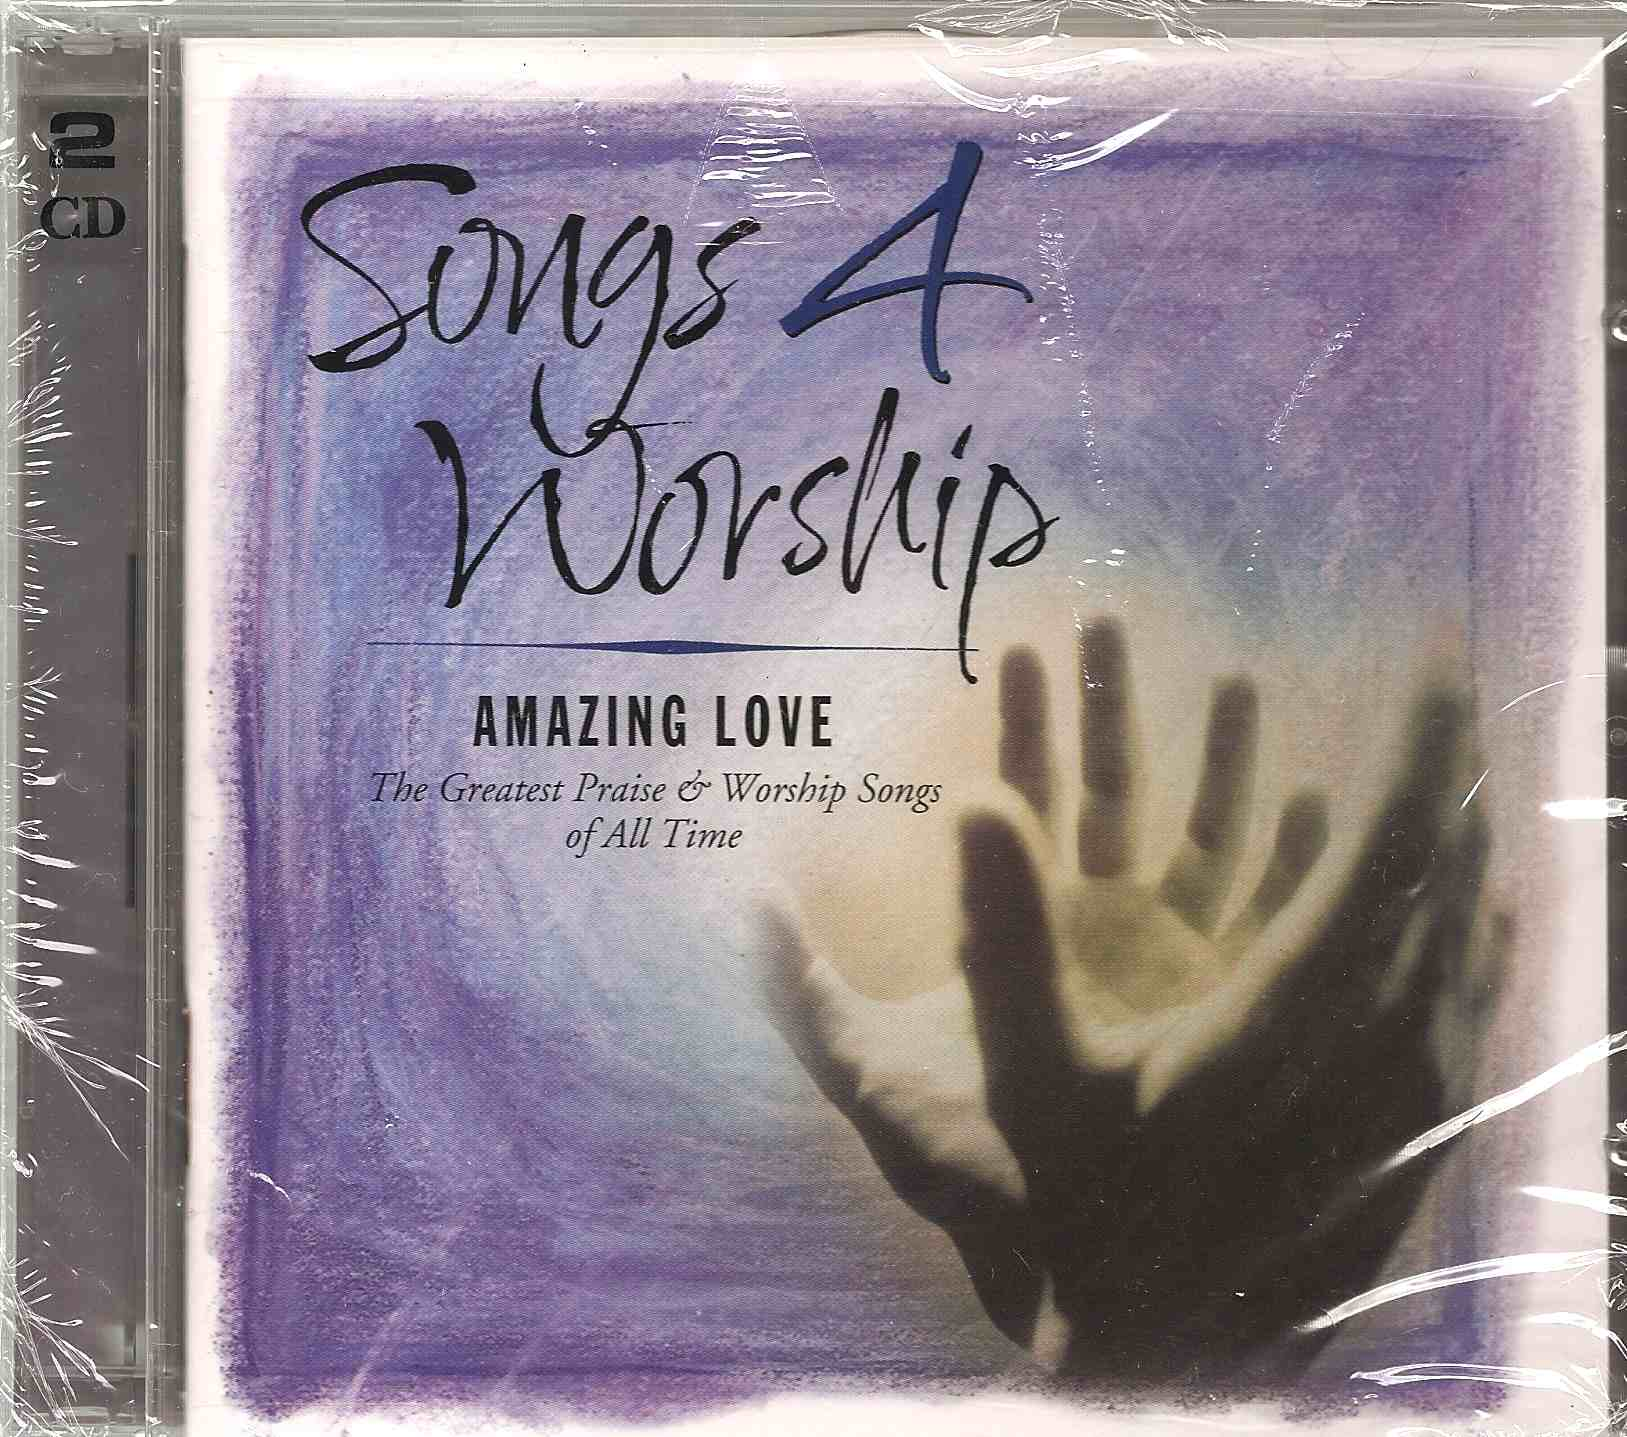 Songs 4 Worship- Amazing Love